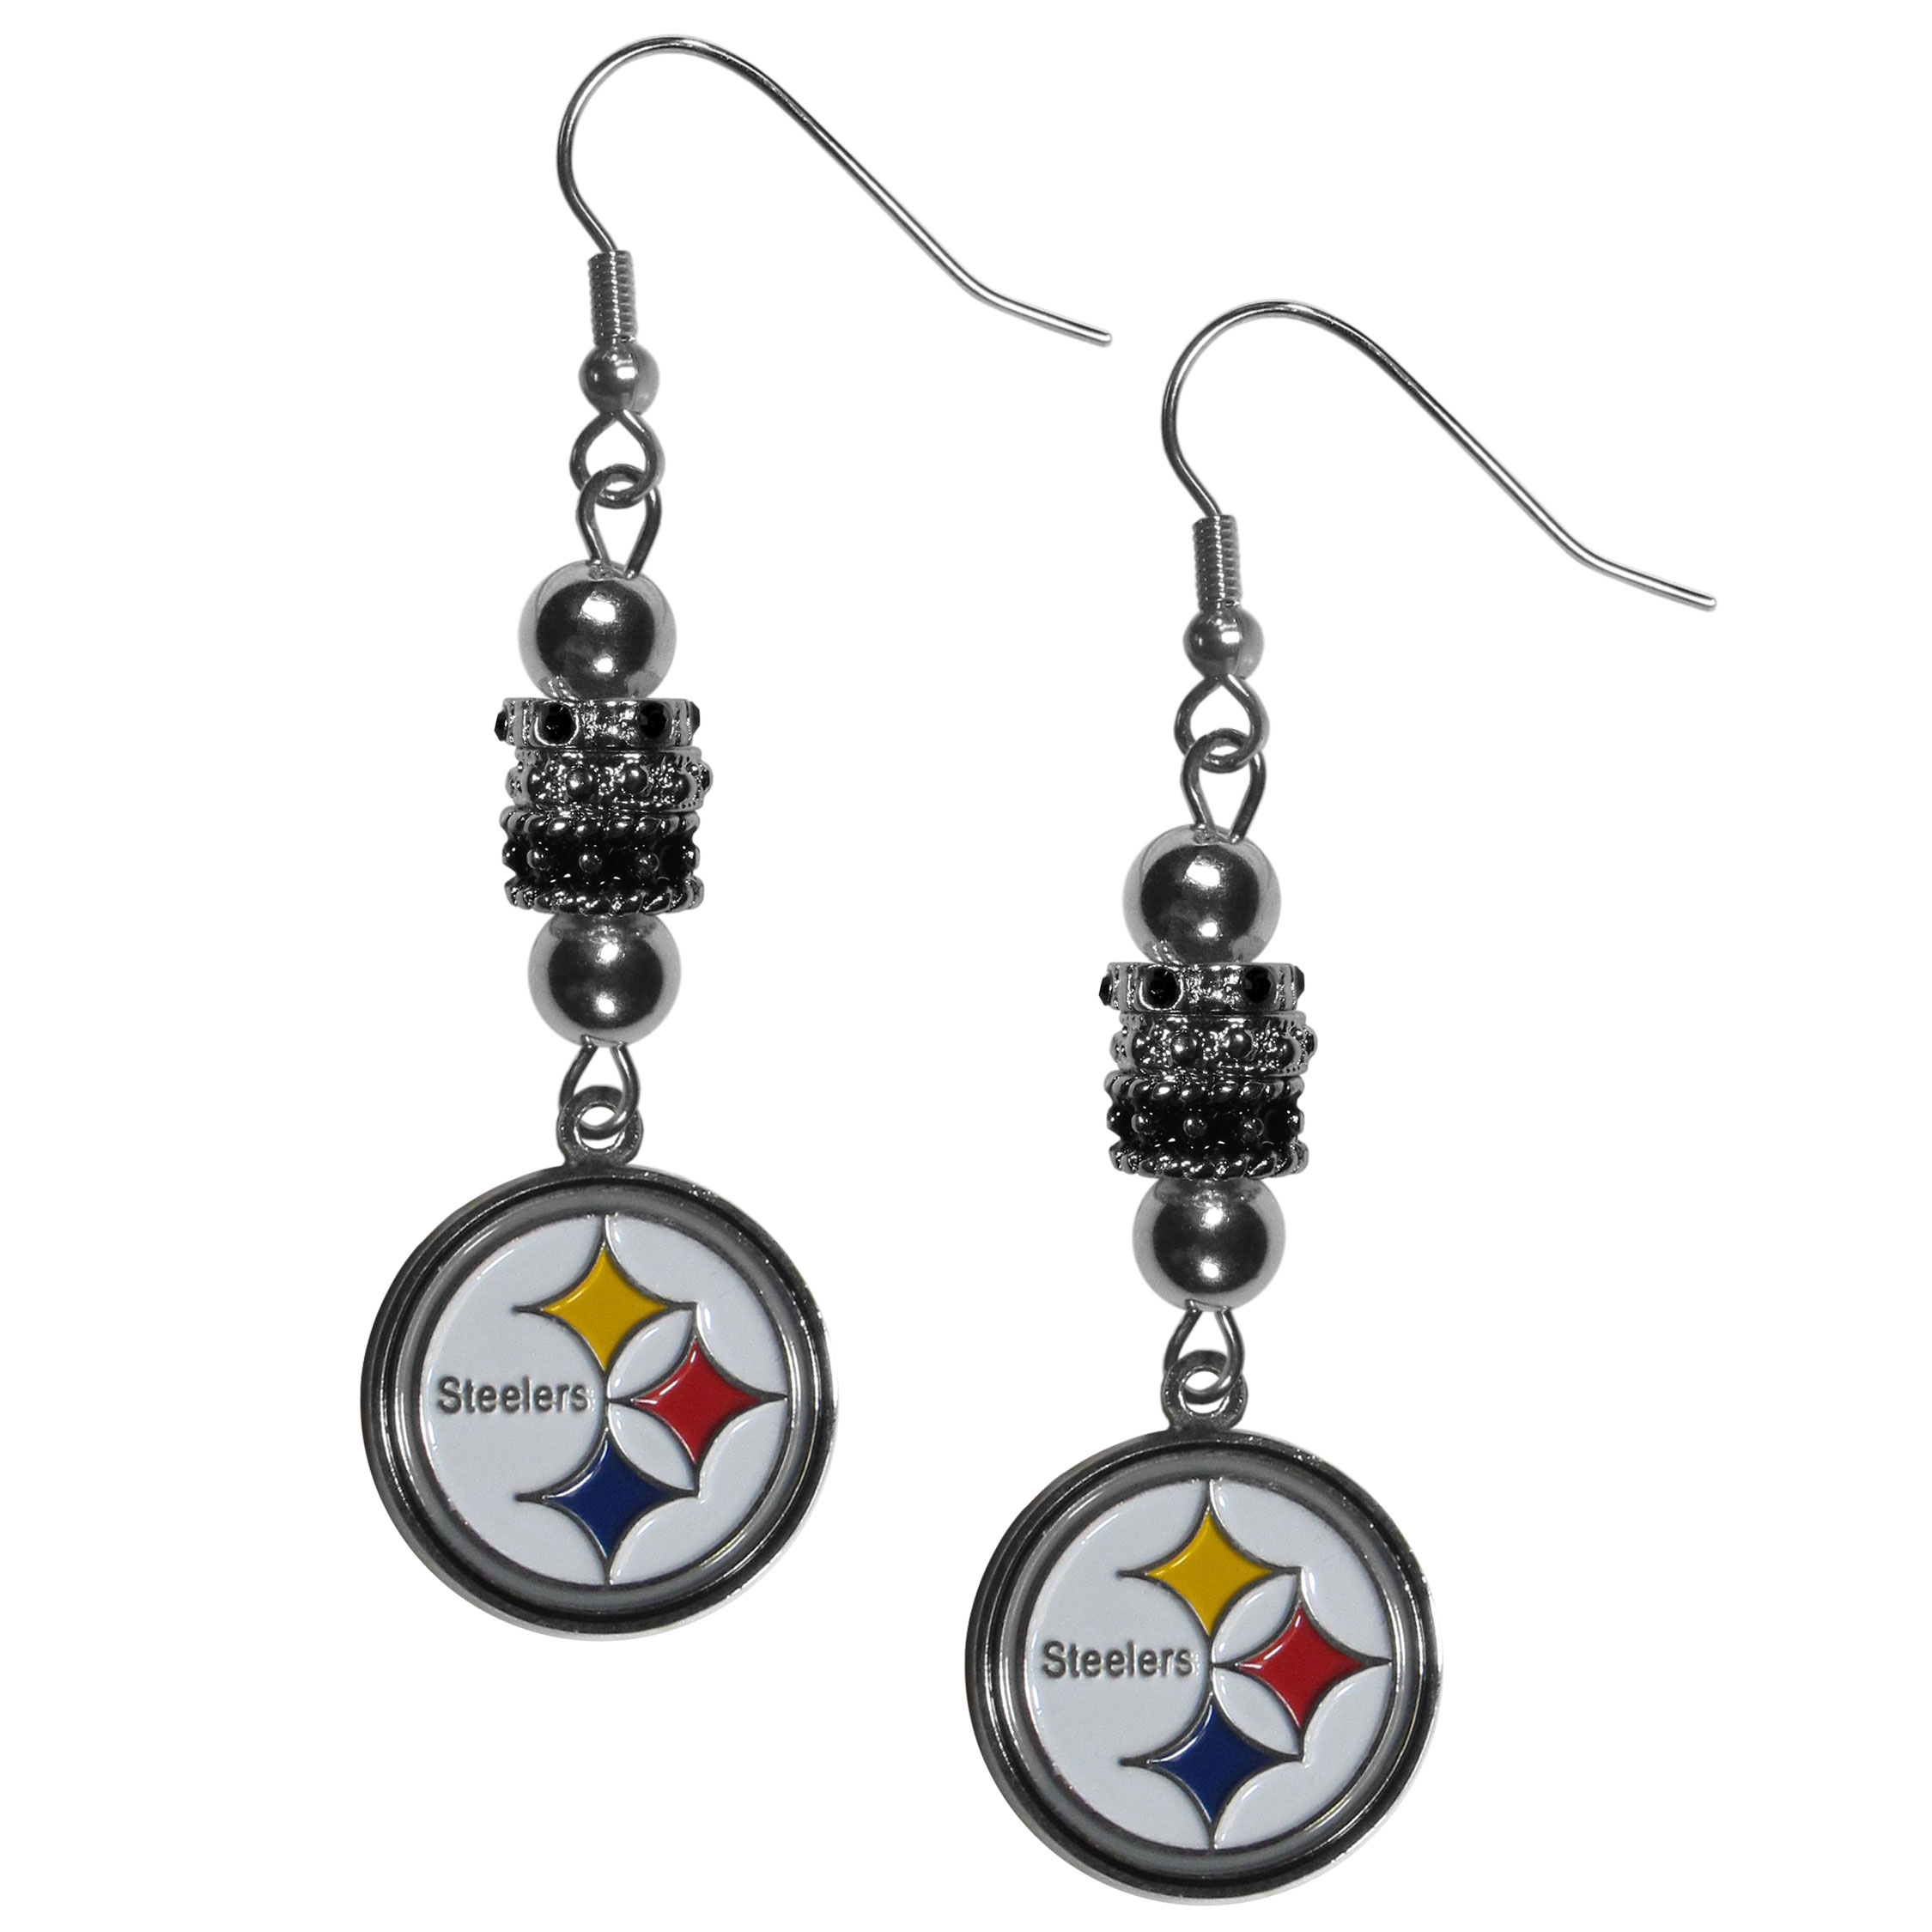 Pittsburgh Steelers Euro Bead Earrings - These beautiful euro style earrings feature 3 euro beads and a detailed Pittsburgh Steelers charm on hypoallergenic fishhook posts.